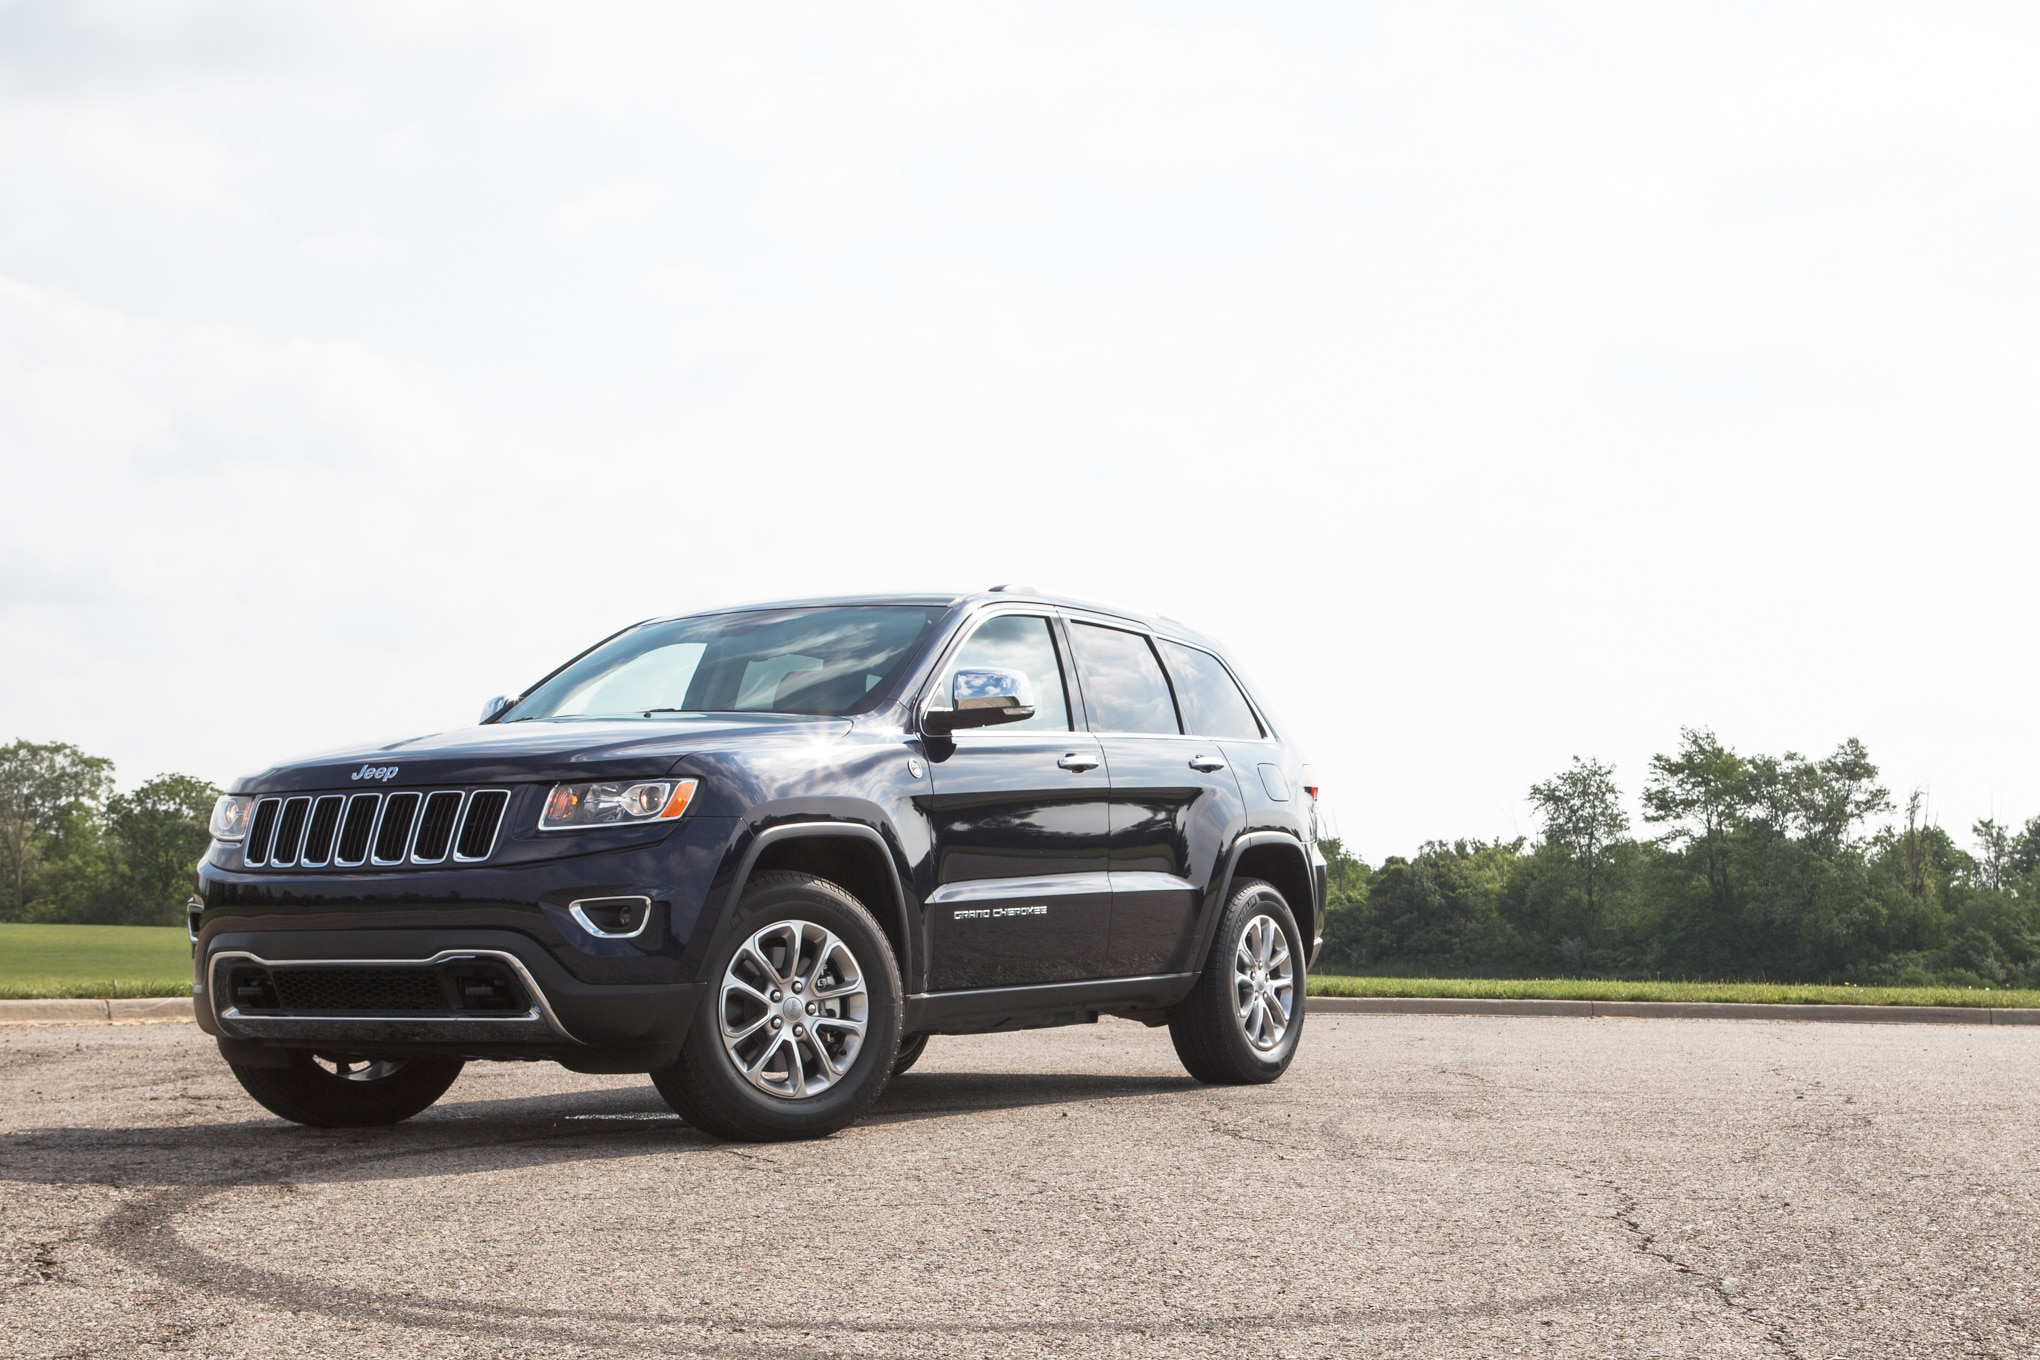 2014 Jeep Grand Cherokee Front Left View 11